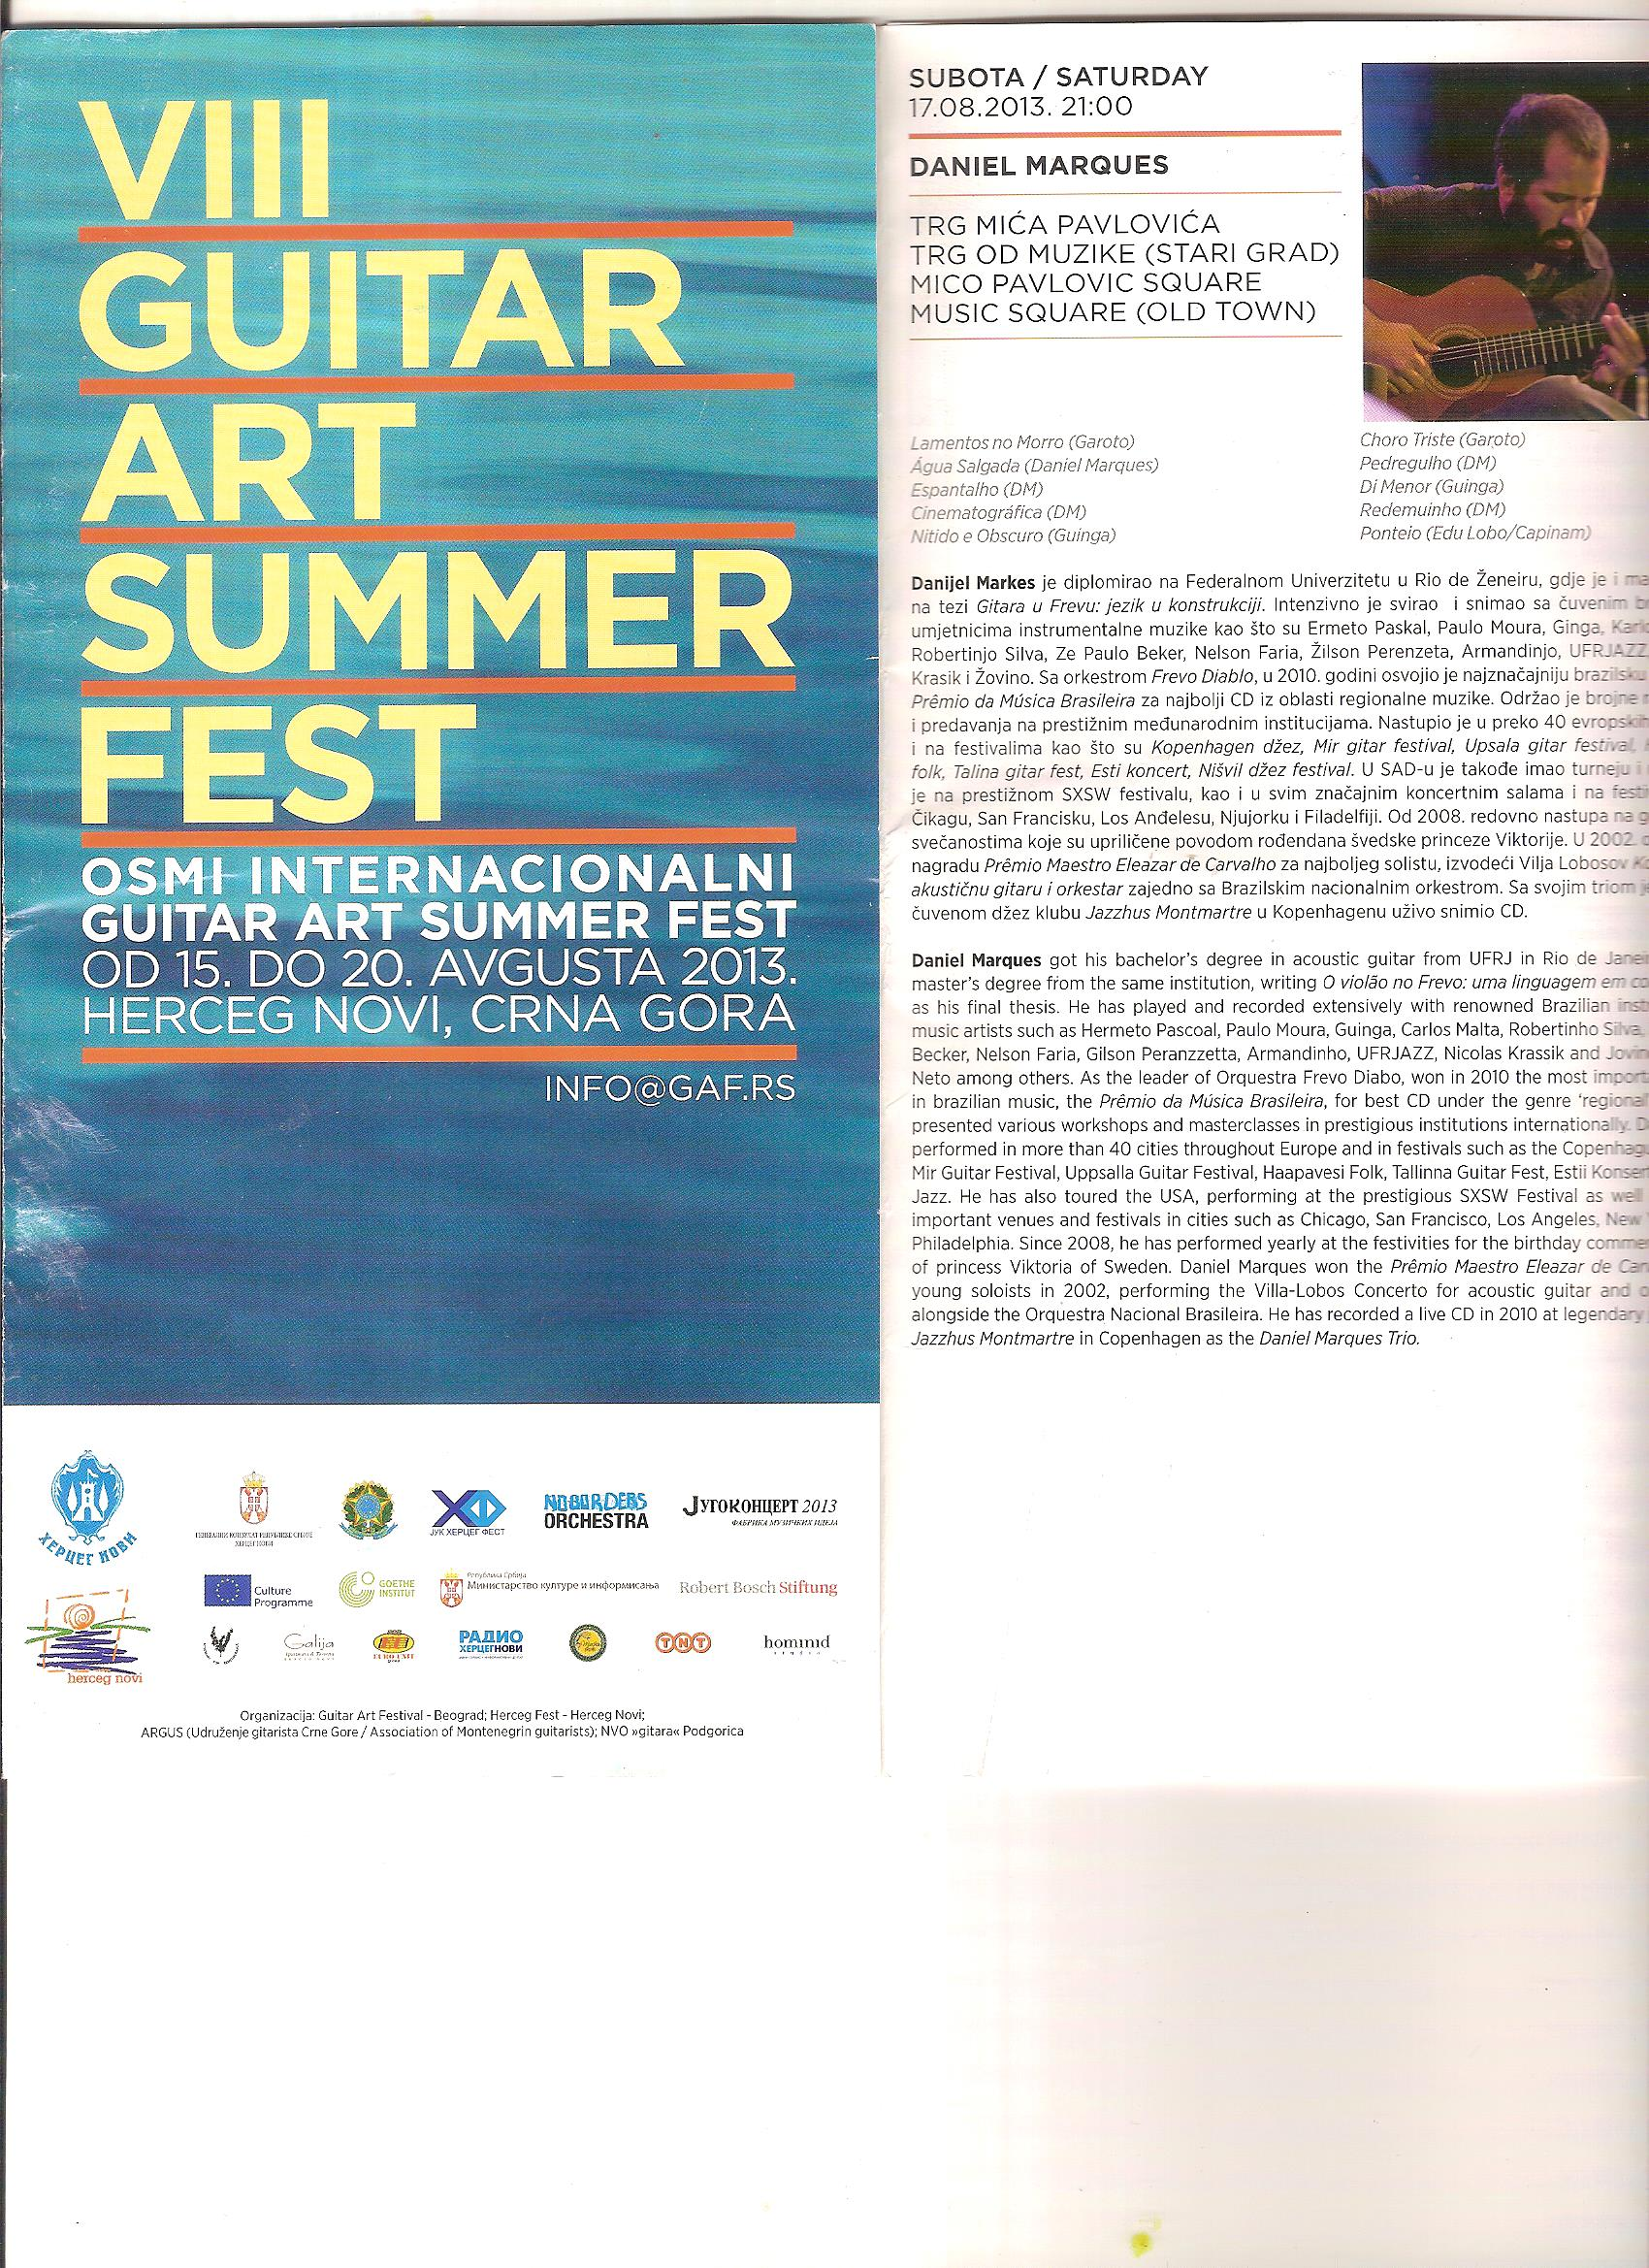 GUITAR ART SUMMER FEST 2013 001.jpg